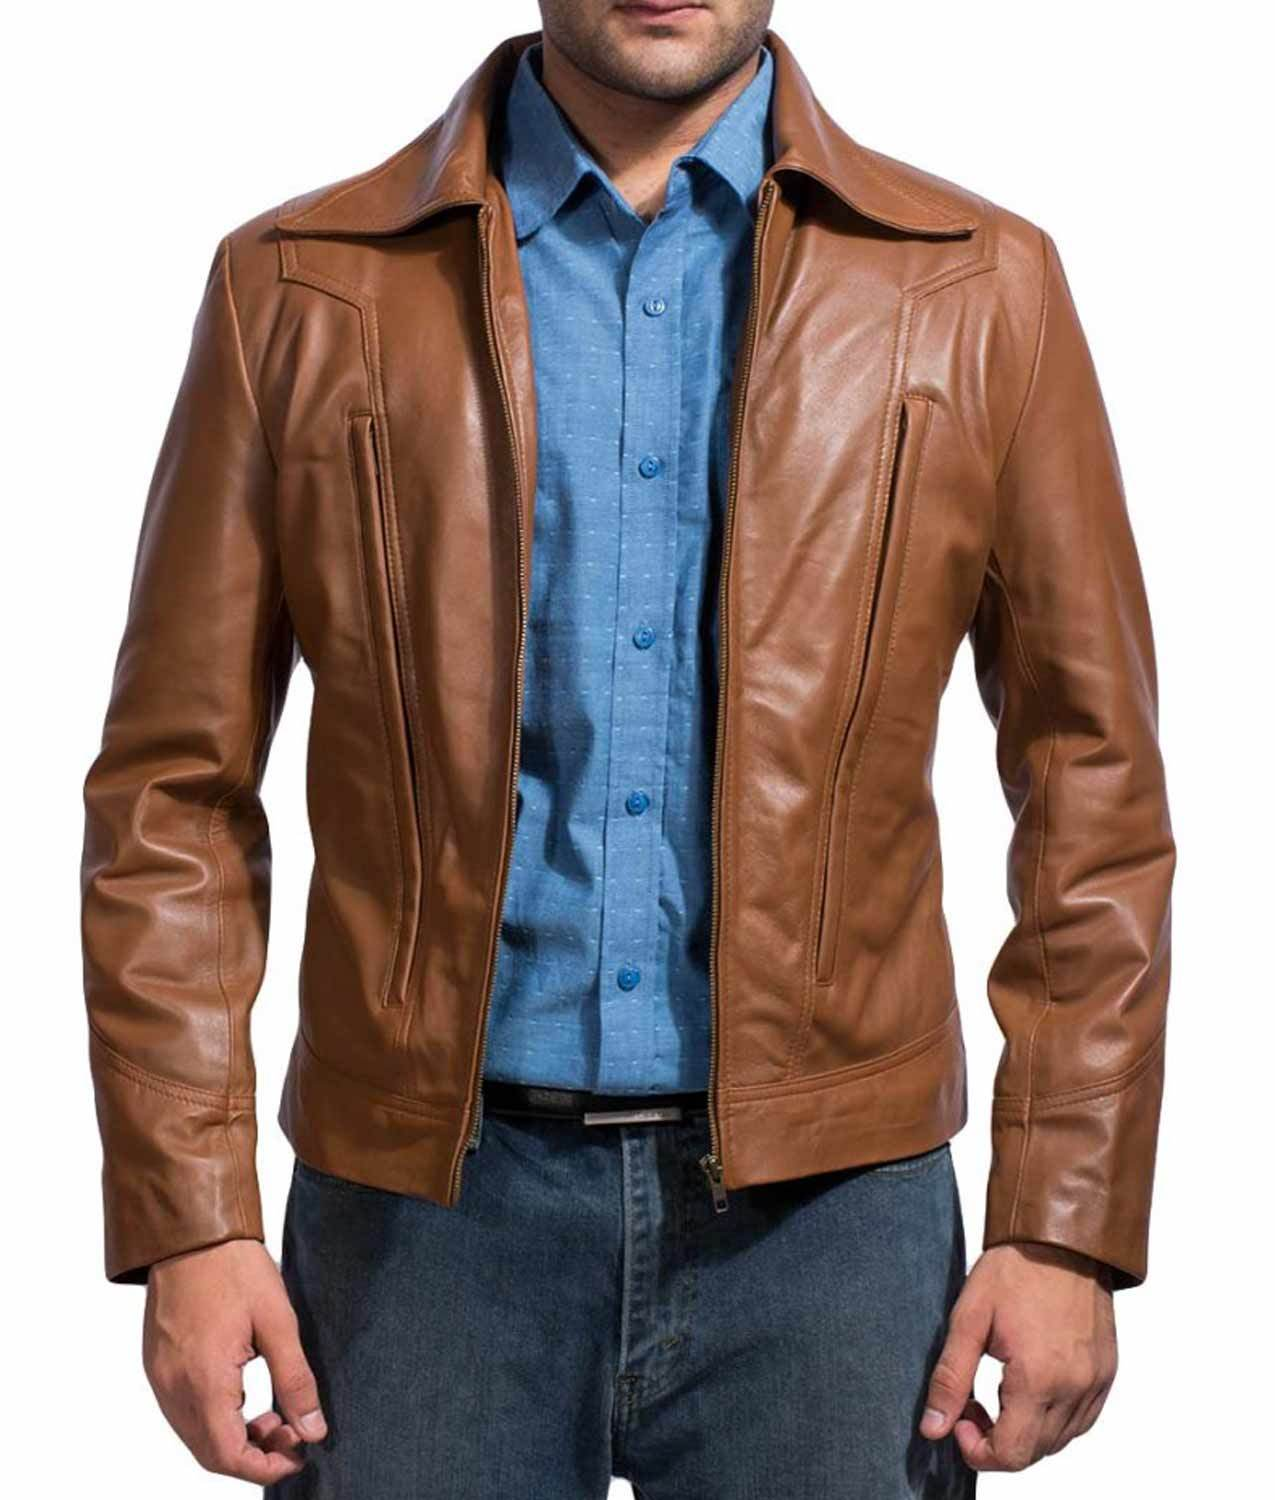 Days of Future Past X Men Leather Jacket